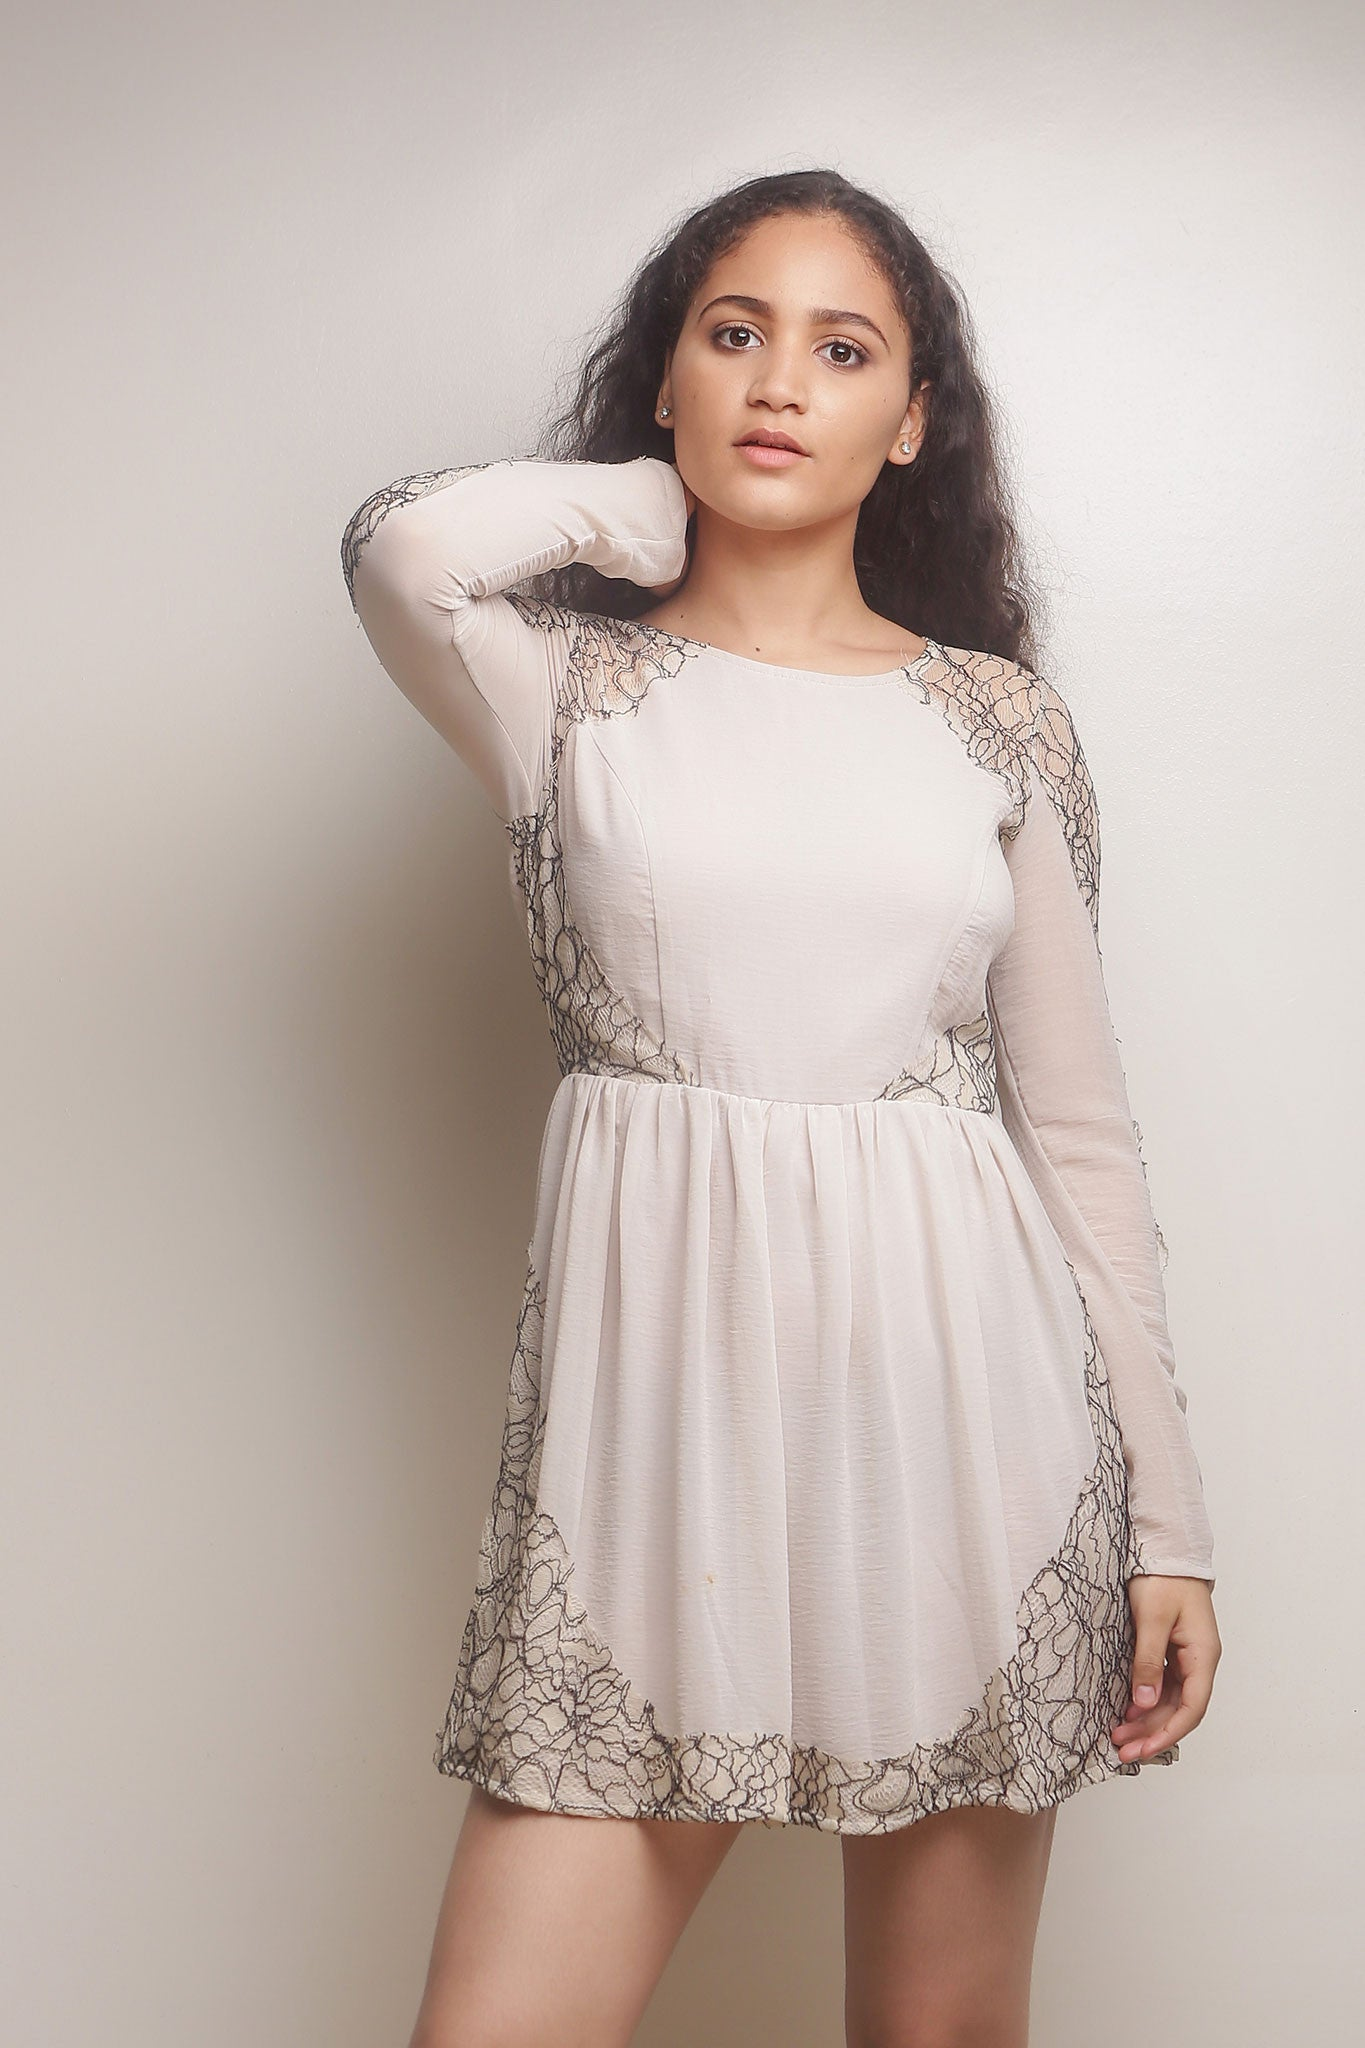 Long Sleeve Cream Dress with Black Lace Sleeves